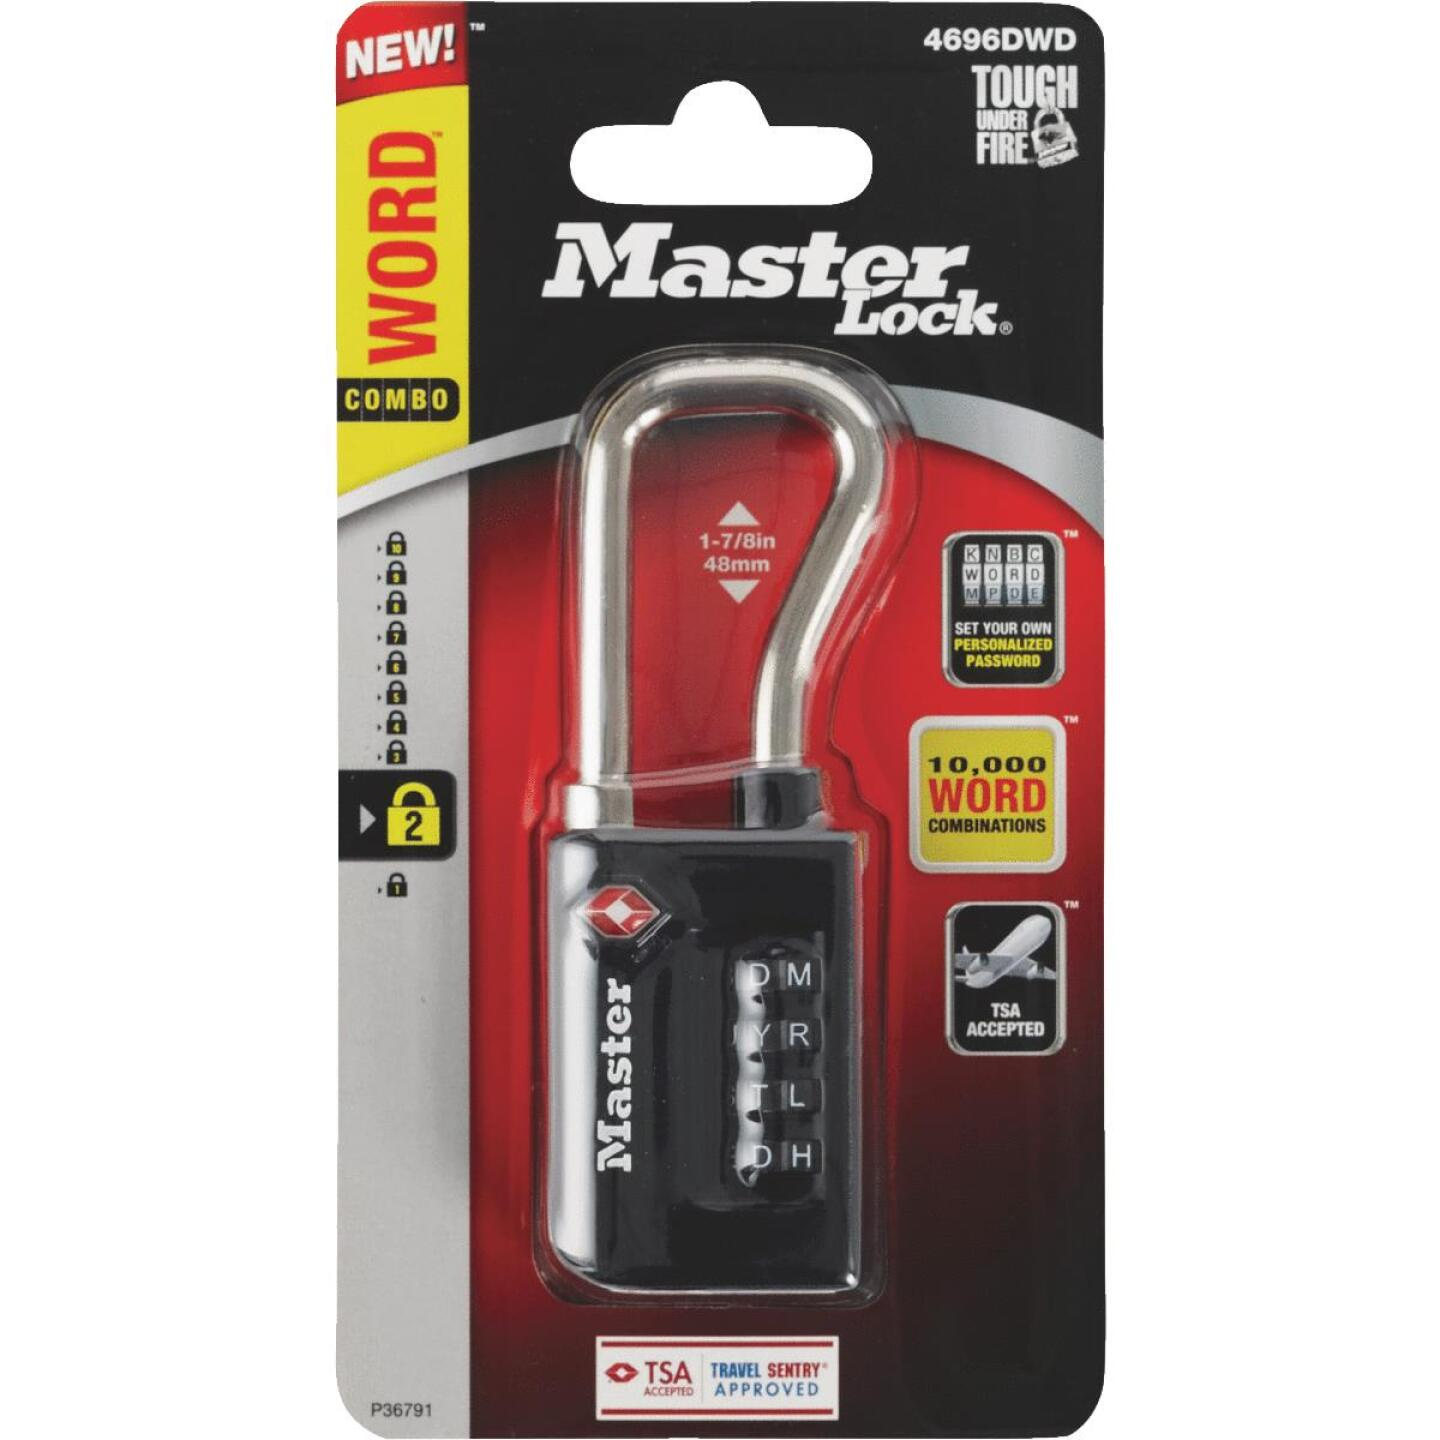 Master Lock 1-5/16 In. Wide WORD Combination Luggage Lock with Extended Reach (TSA Accepted) Image 2